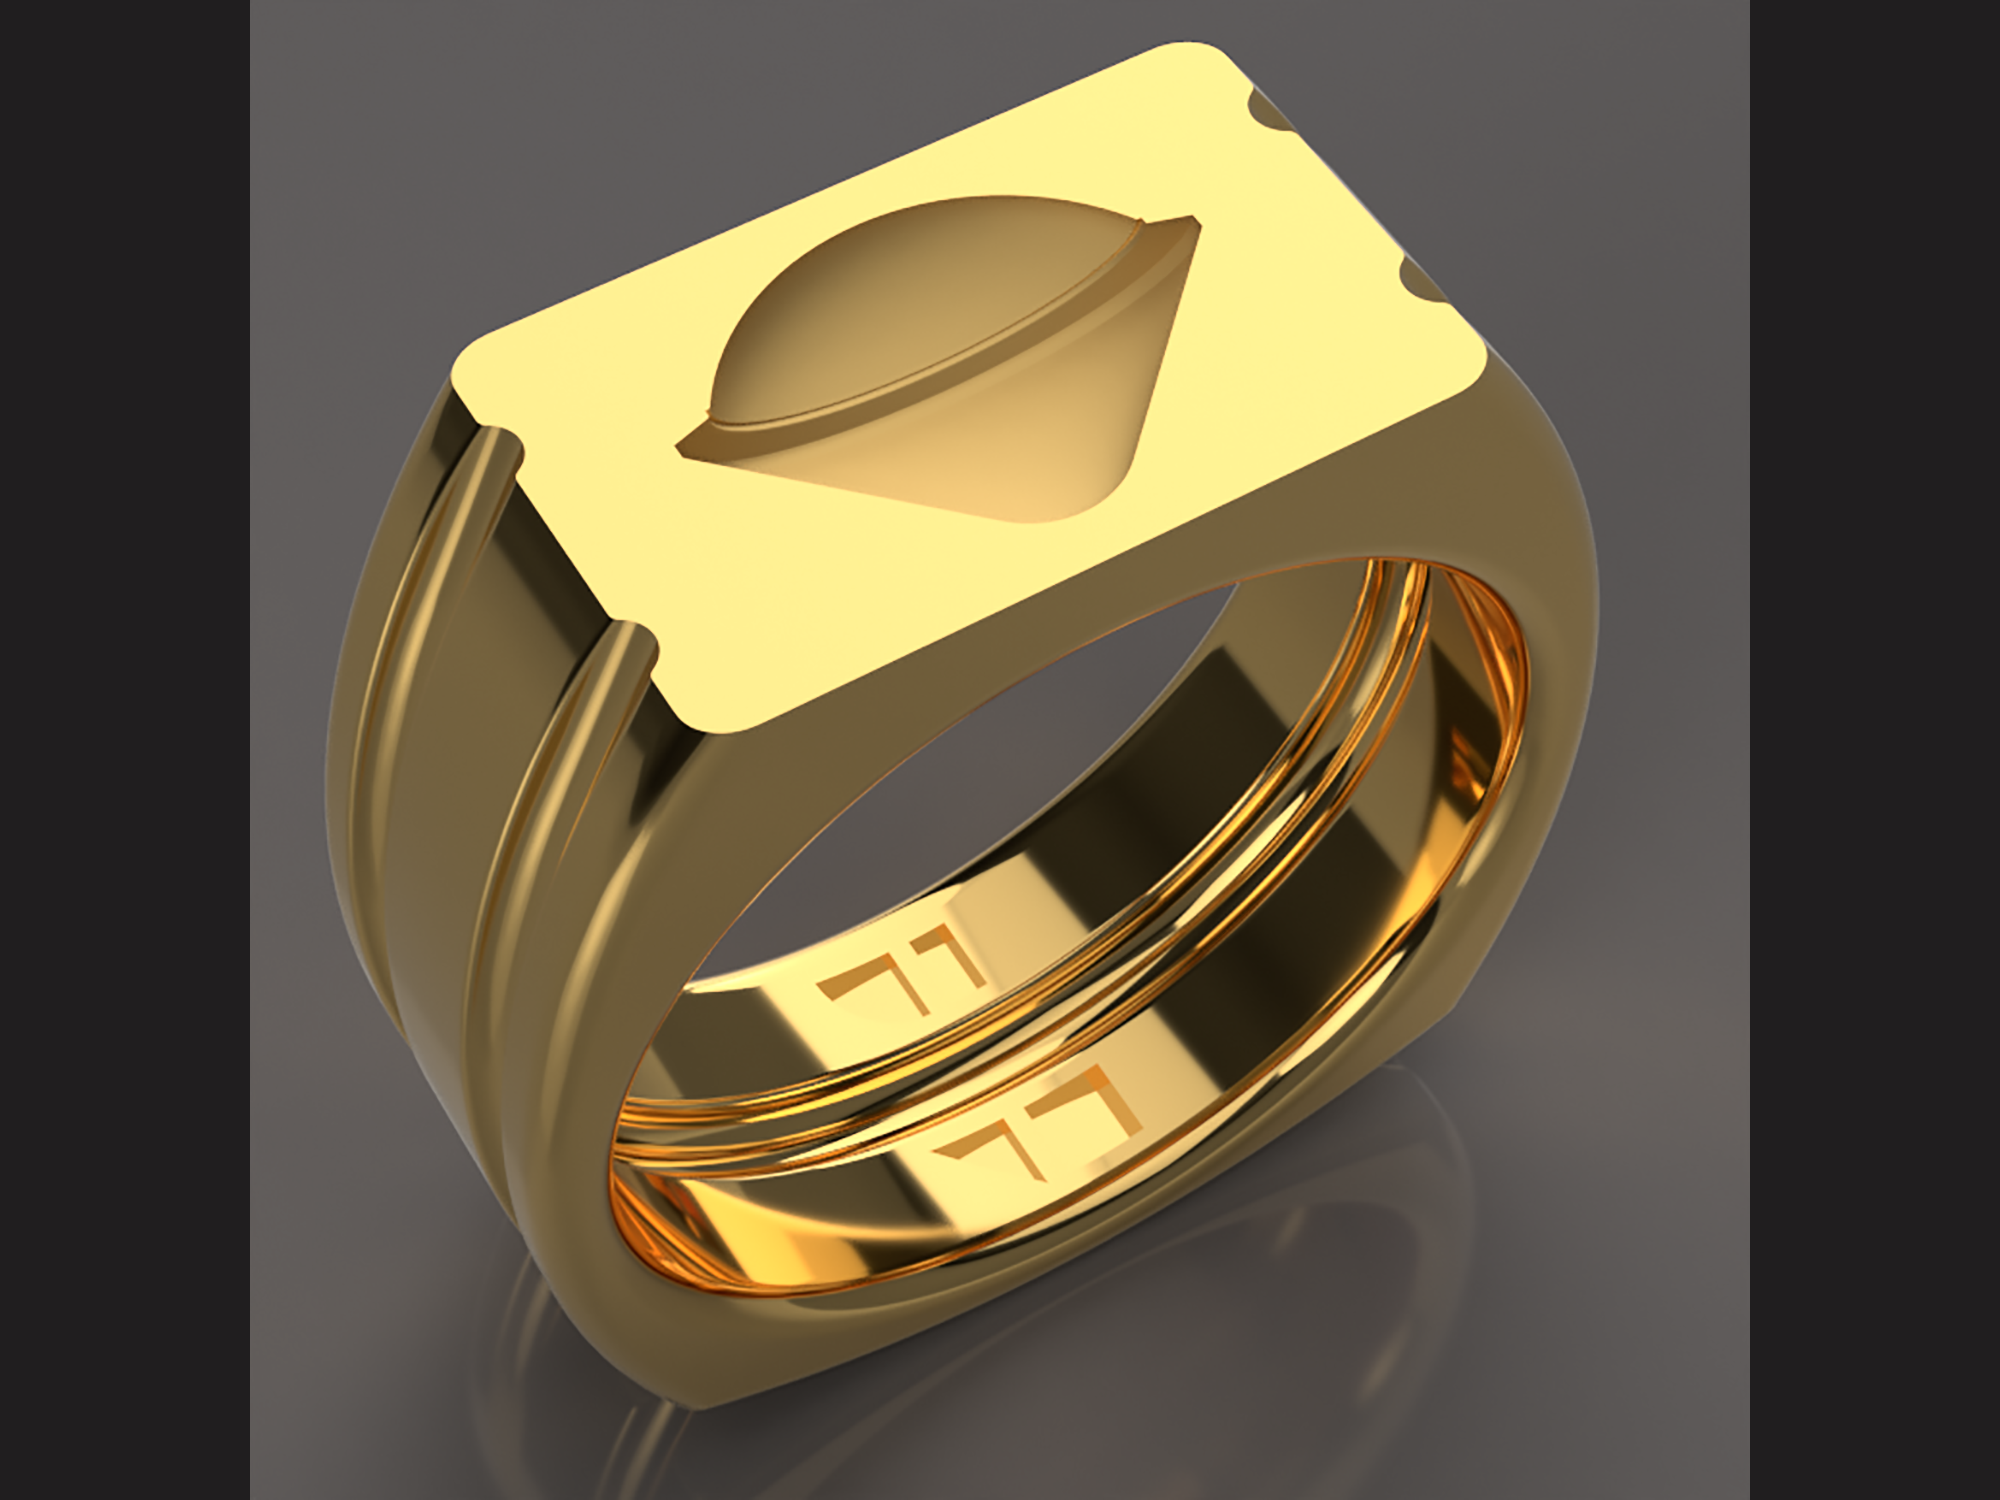 Fusion 360 rendered Galileo probe ring model